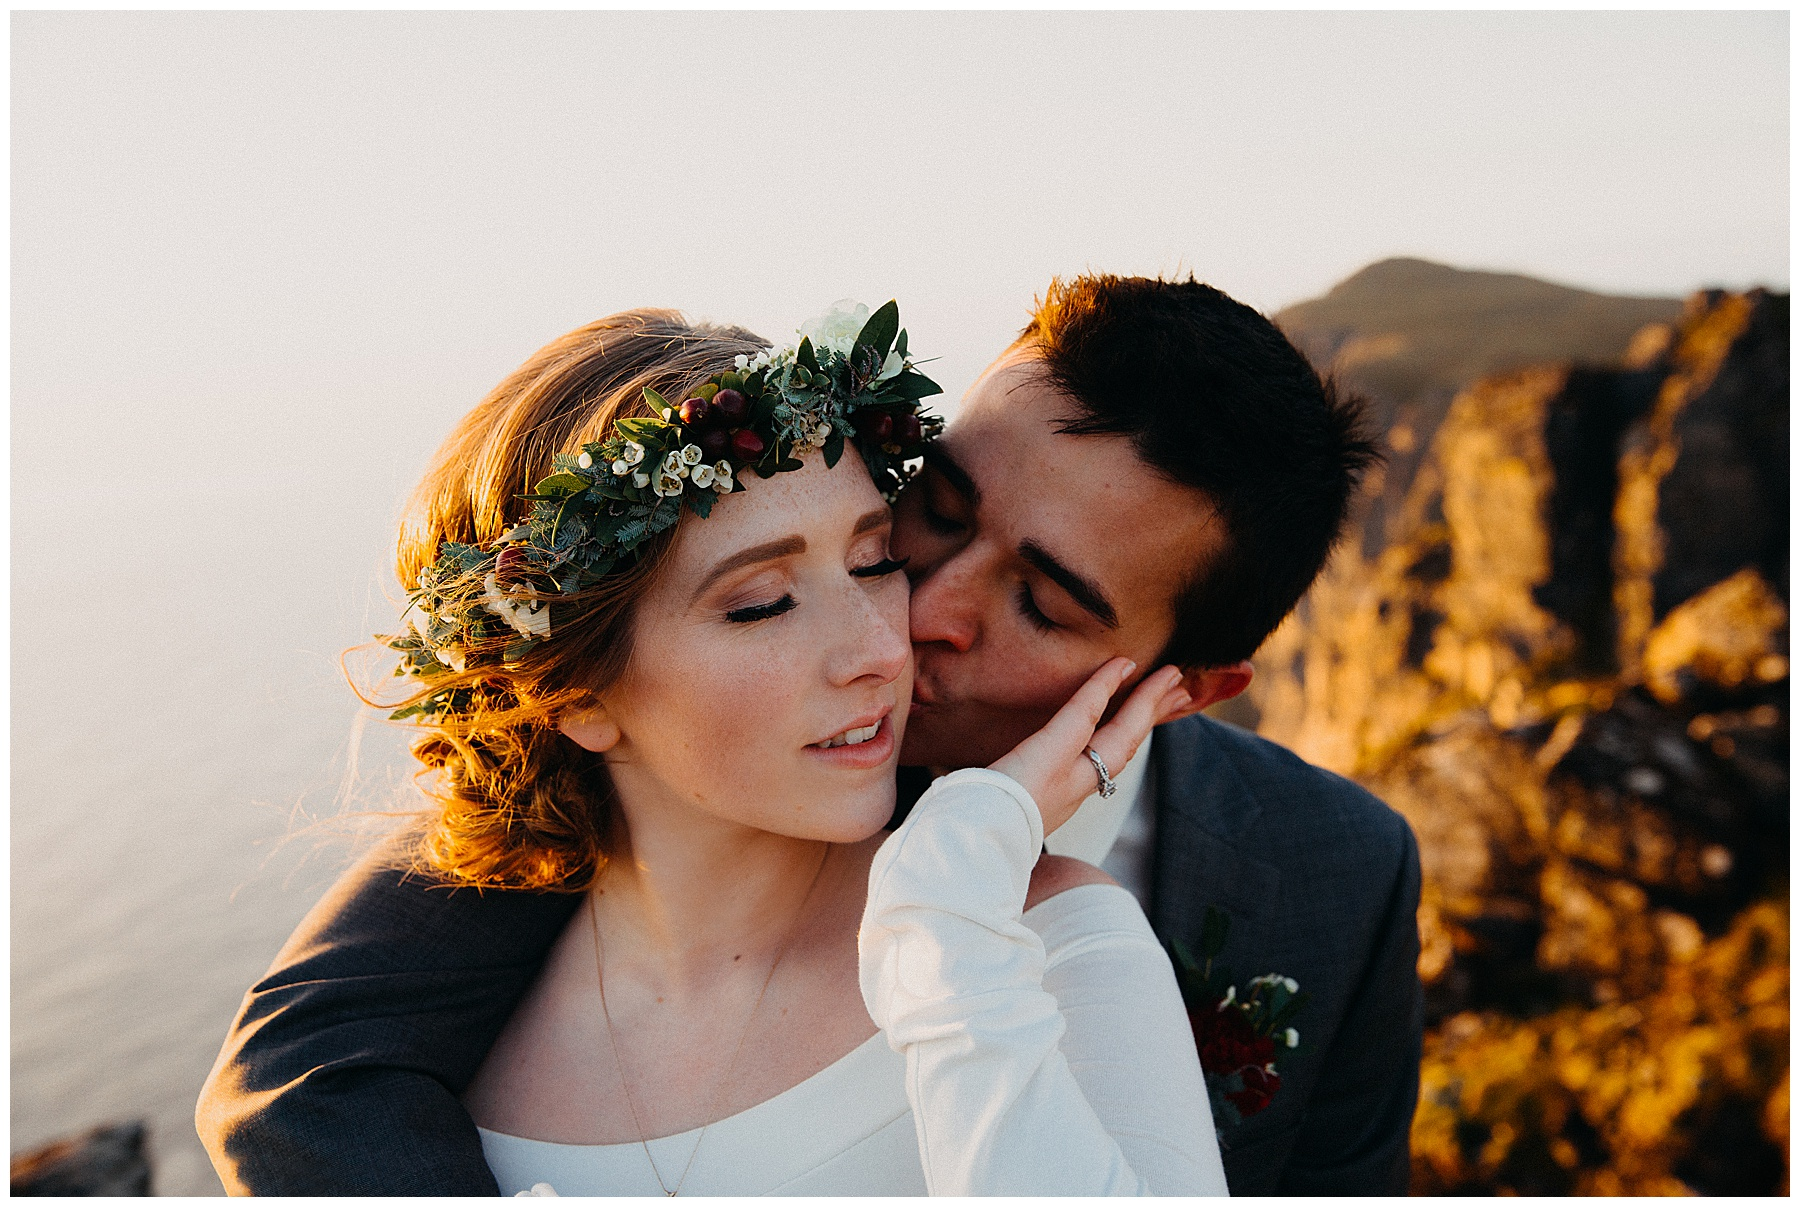 Mountaintop Elopement - Kristian & Seth